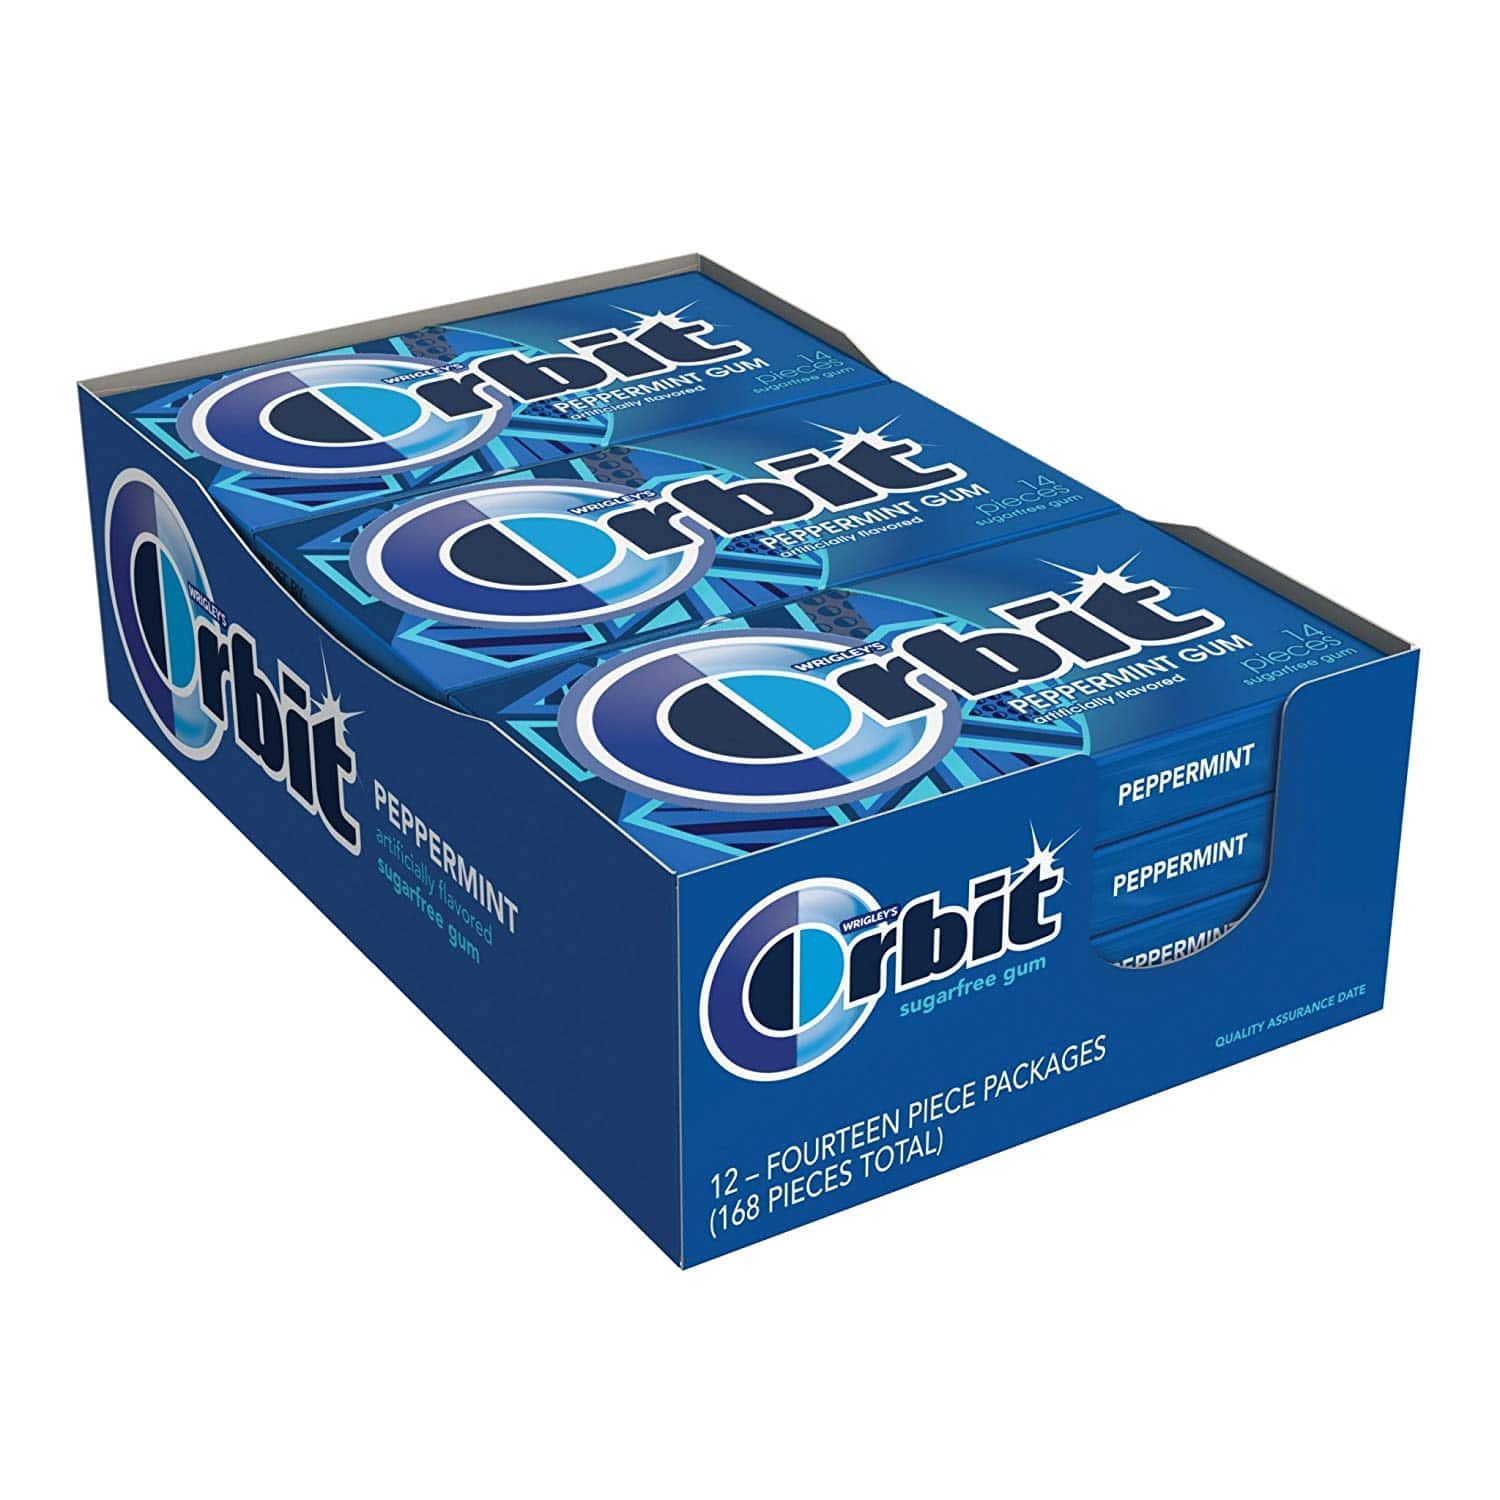 168-Piece Orbit Peppermint Gum - $5.59 at Amazon with subscribe and save (or less) $6.99